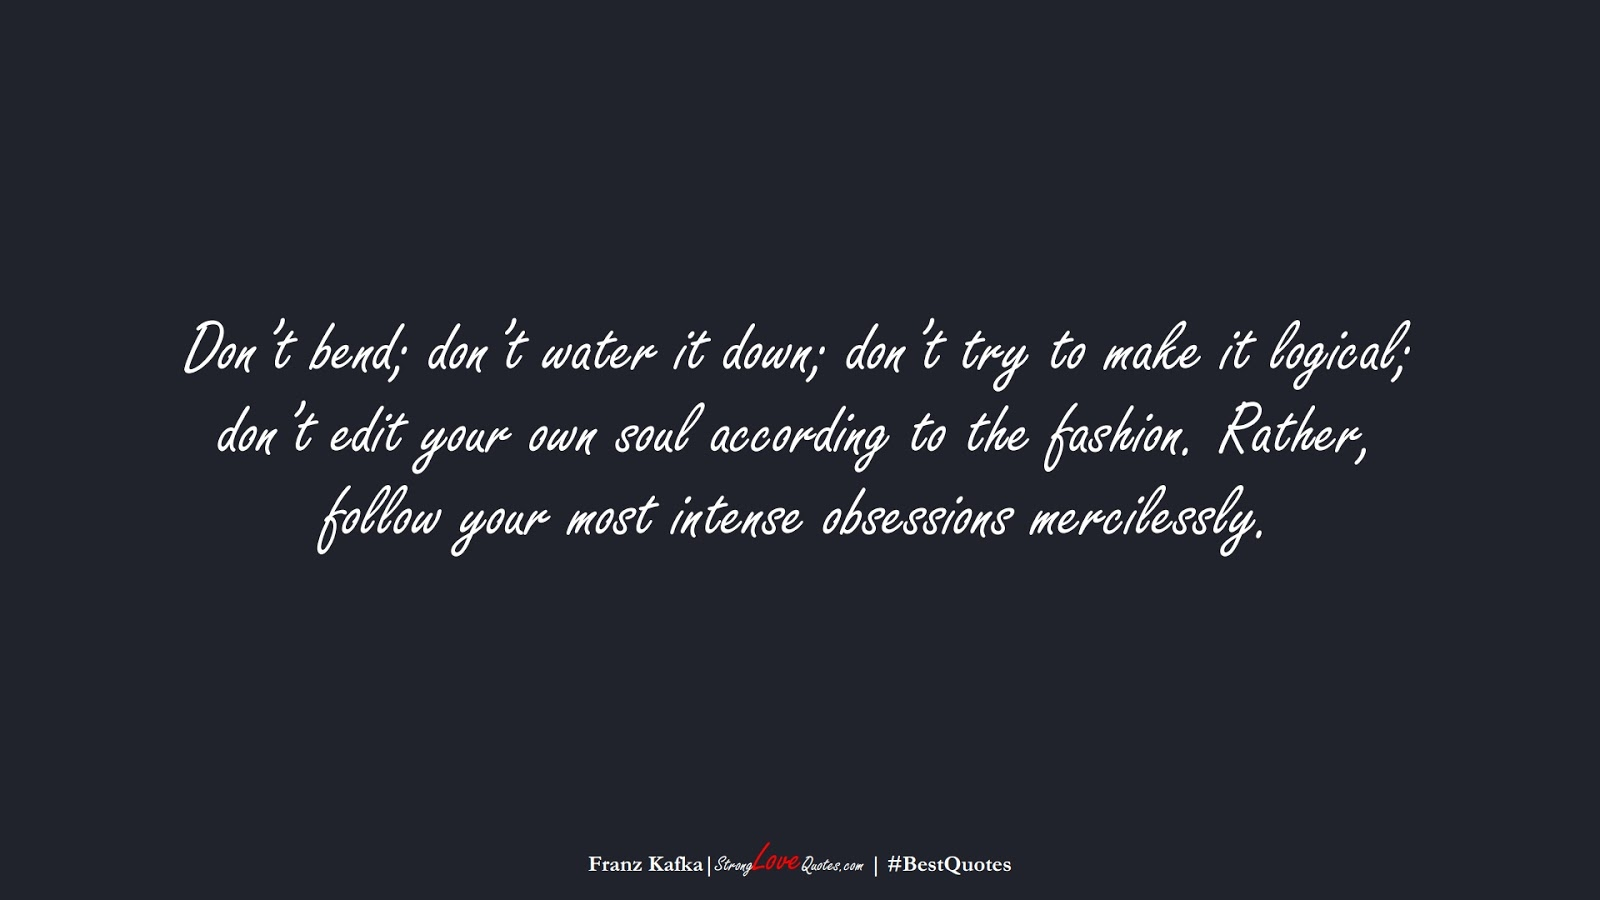 Don't bend; don't water it down; don't try to make it logical; don't edit your own soul according to the fashion. Rather, follow your most intense obsessions mercilessly. (Franz Kafka);  #BestQuotes